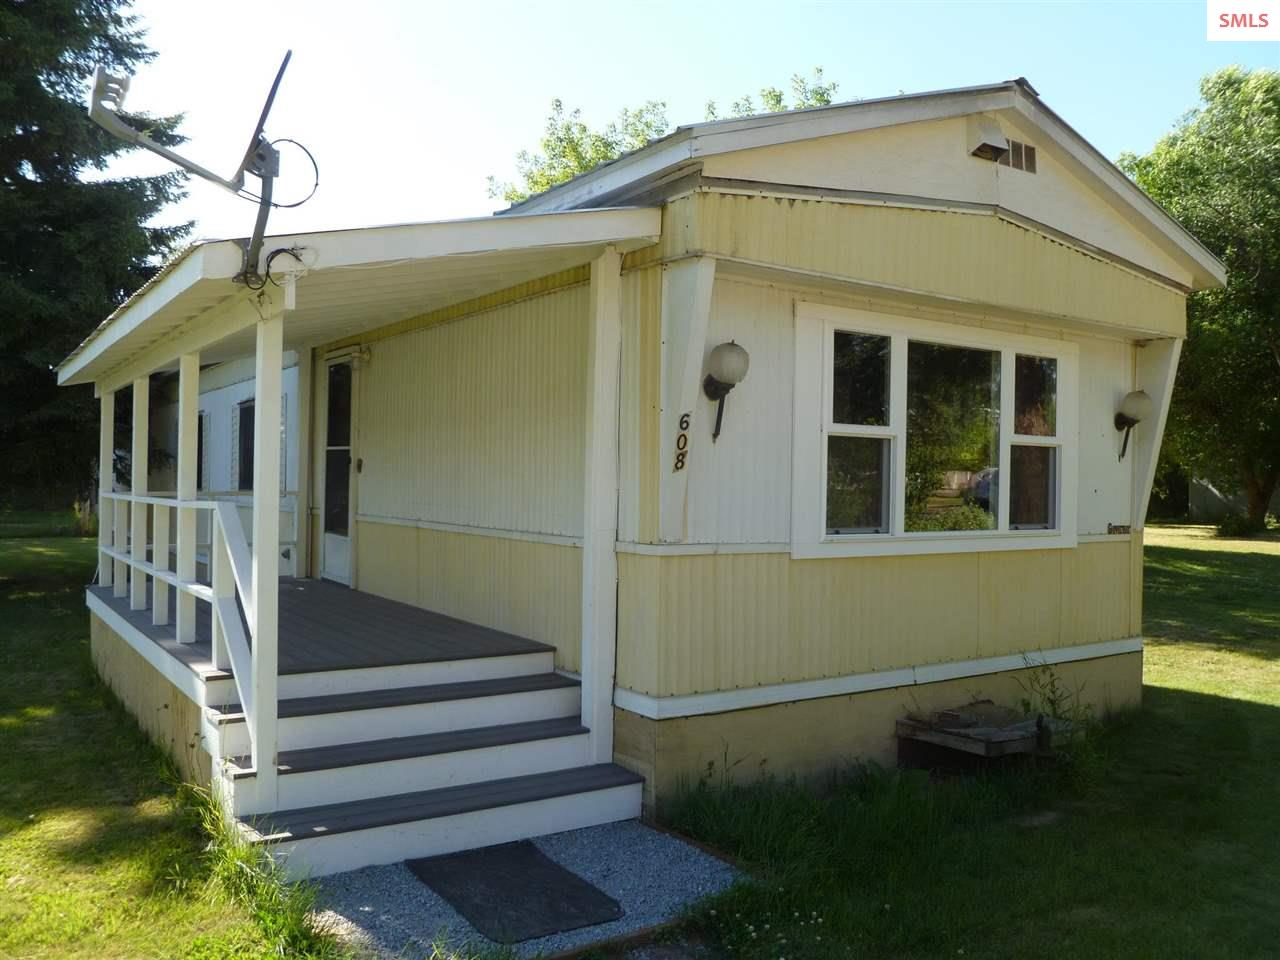 Great starter 2 bedroom, 1 bath home on a double lot in Oldtown, ID. Home is currently an income producing rental on a month to month bases. Property is located less a mile and half from city boat launch, and city amenities. Don't miss this opportunity on a great buy!